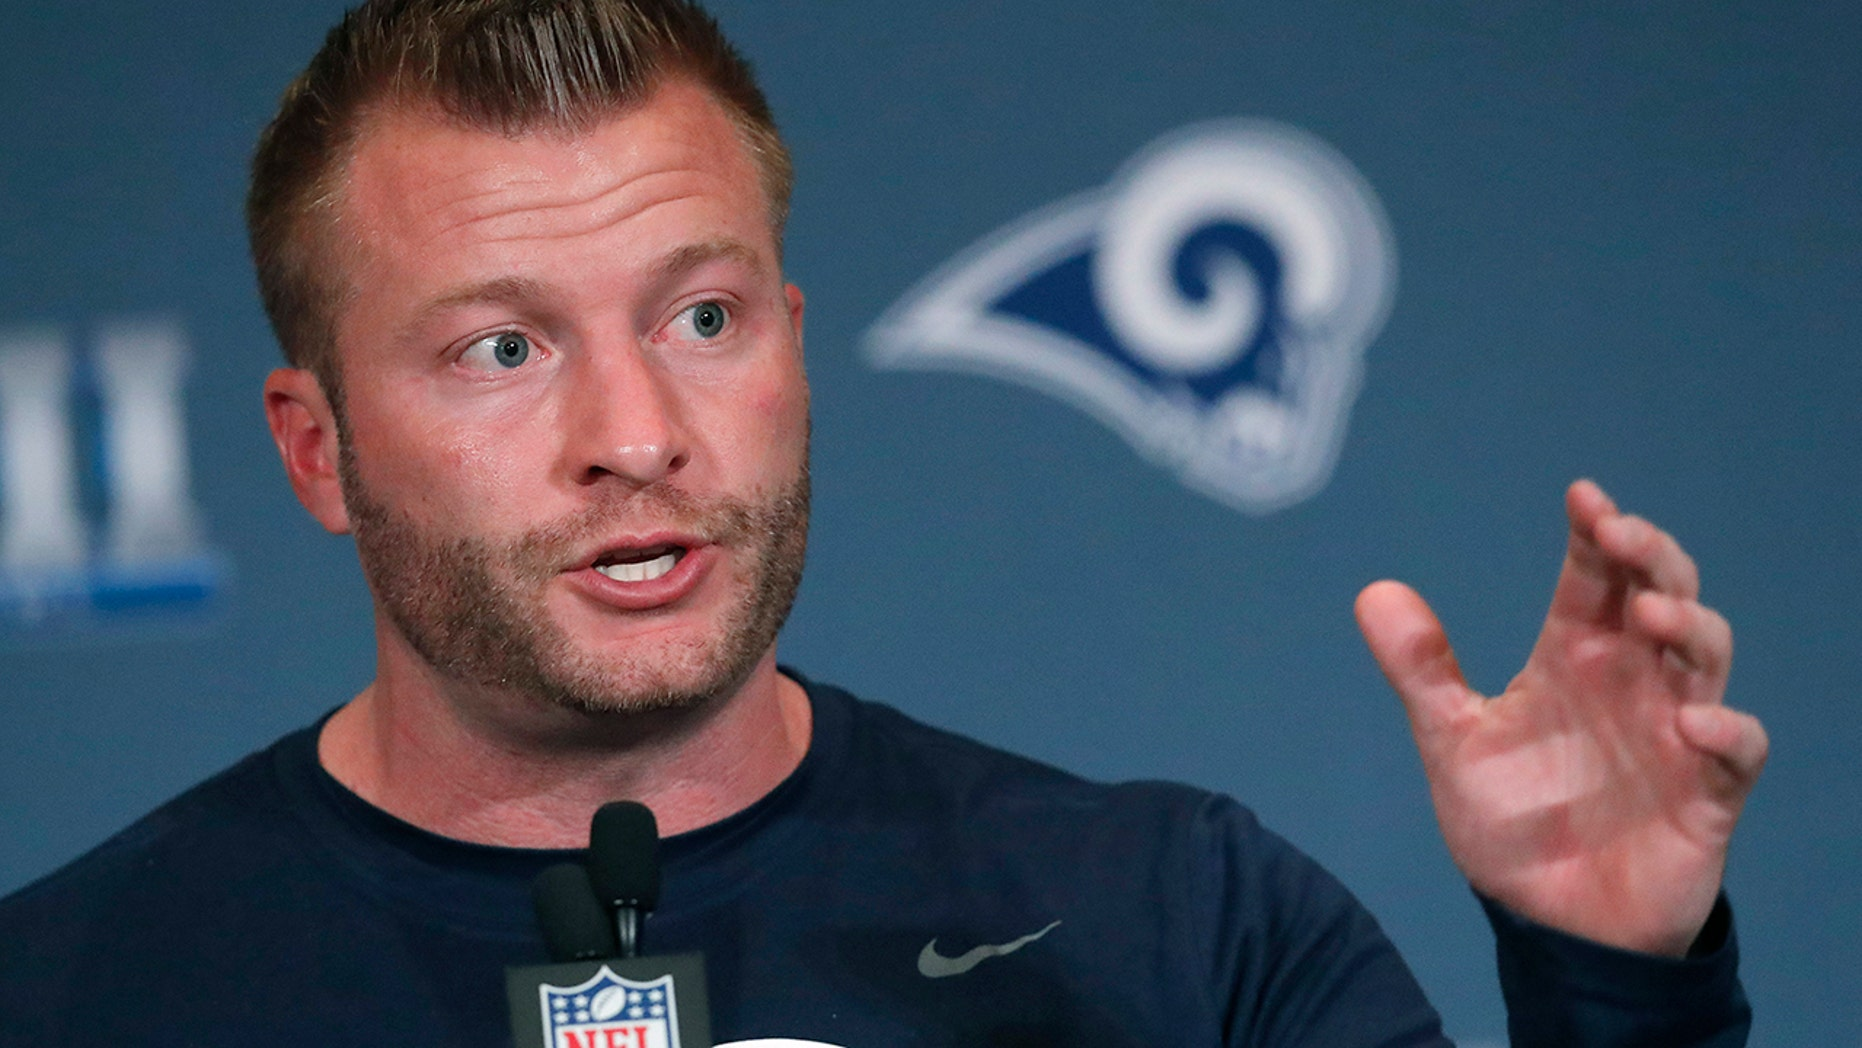 Los Angeles Rams head coach Sean McVay speaks during a news conference Tuesday, Jan. 29, 2019, in Atlanta, ahead of the NFL Super Bowl 53 football game.